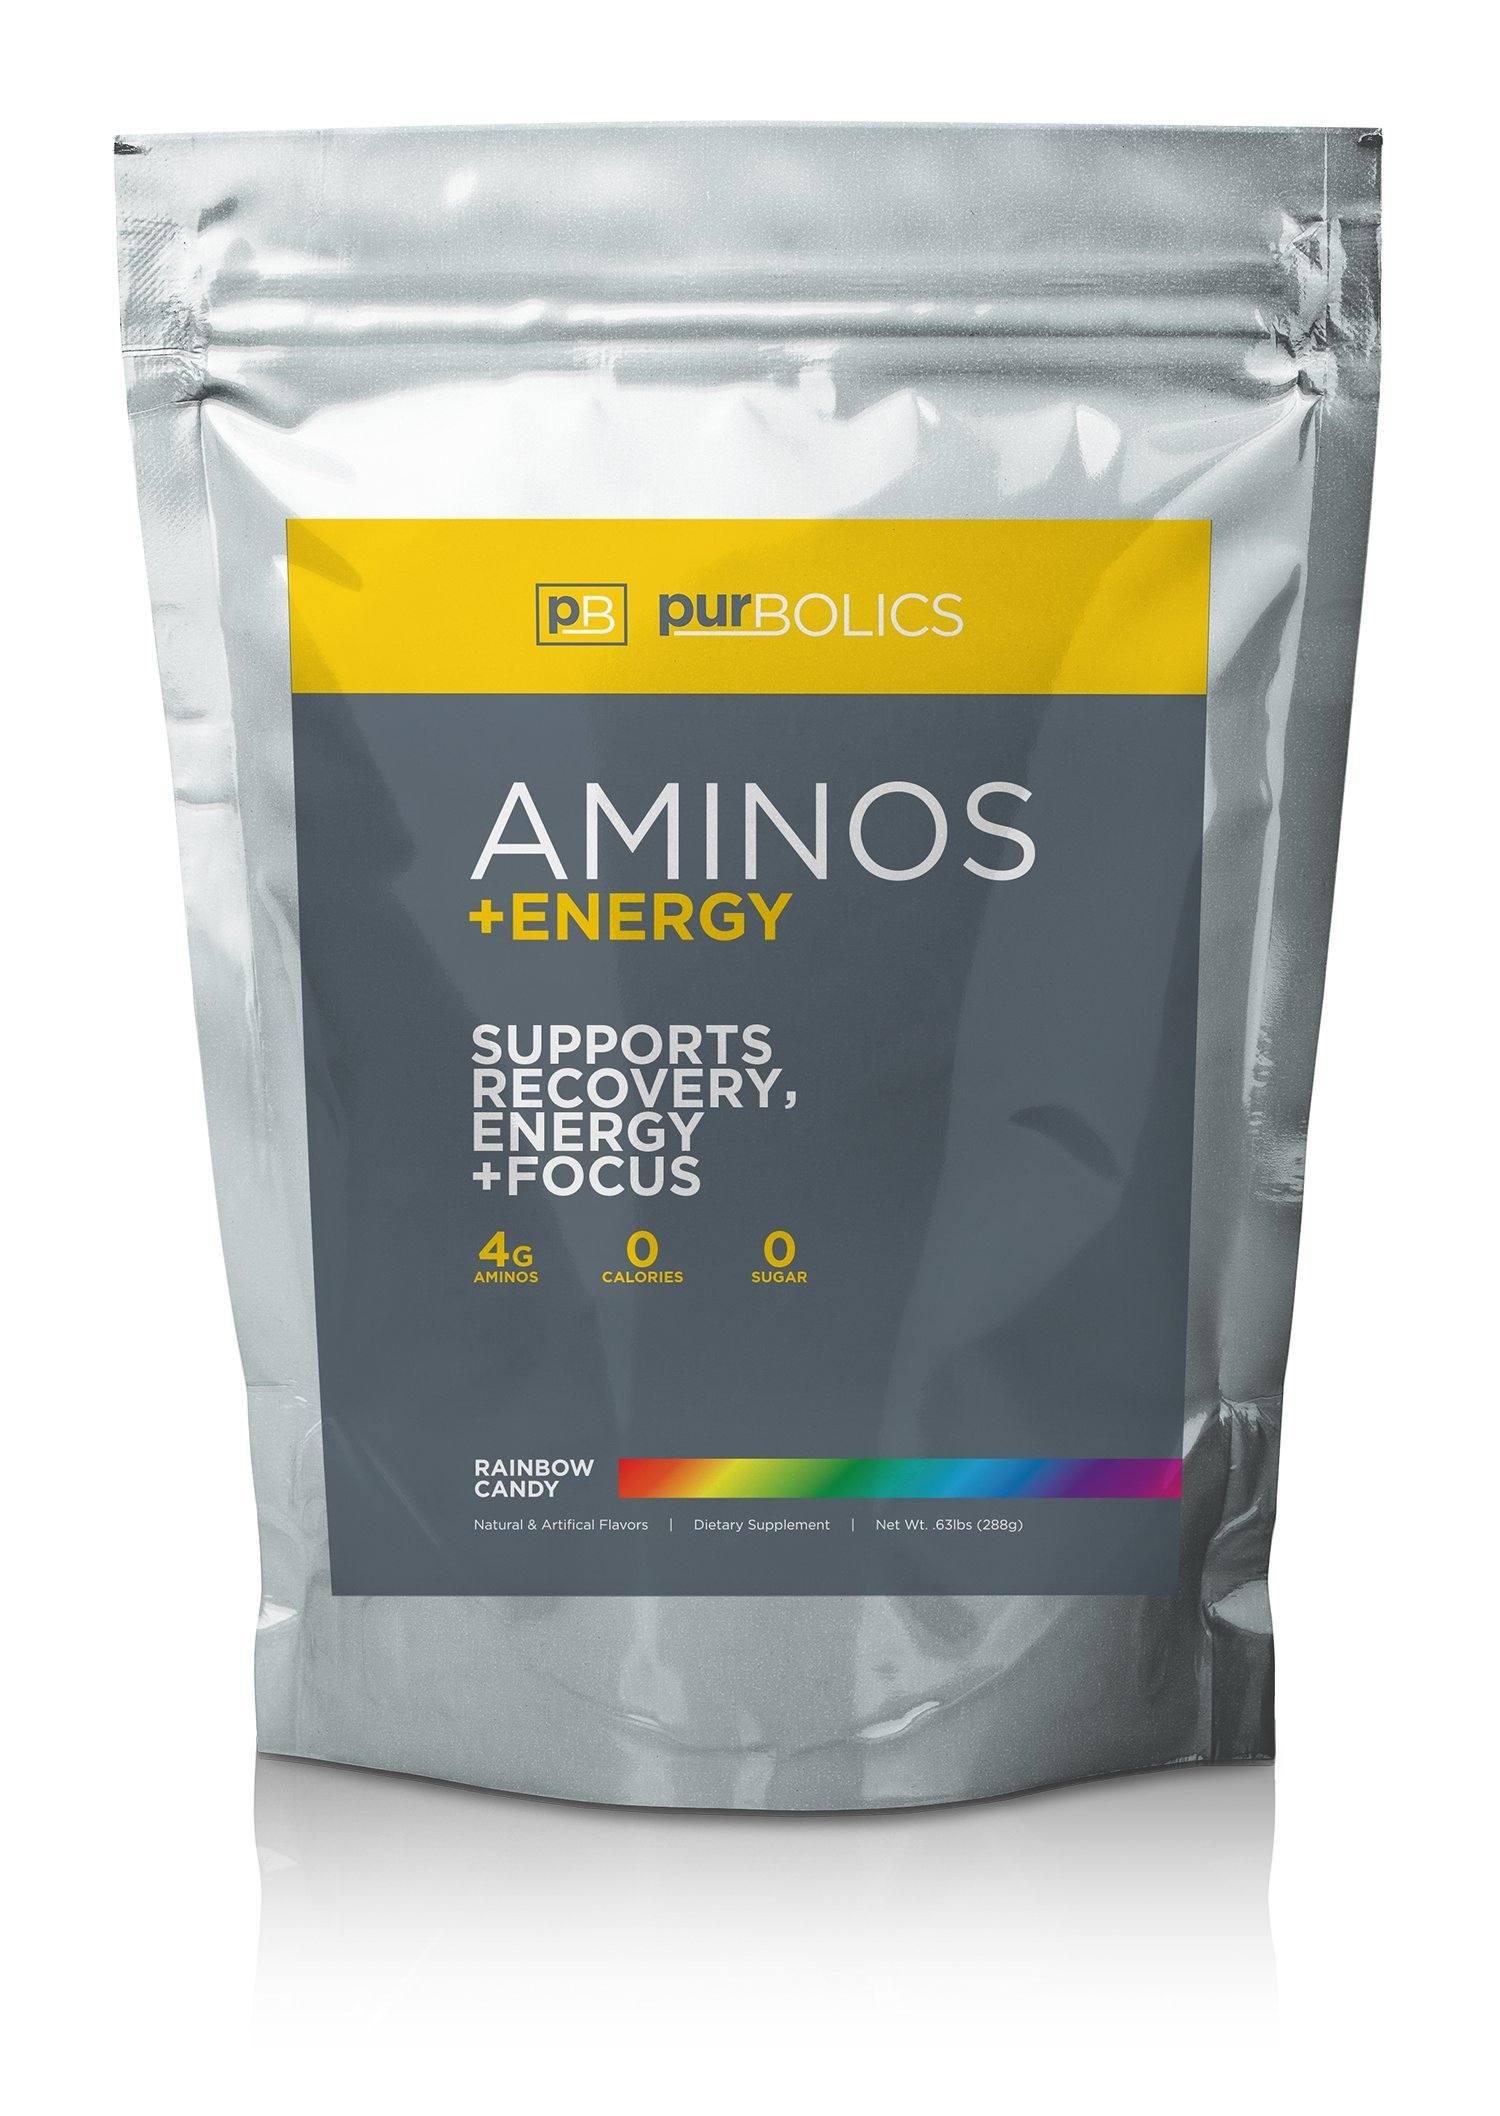 Purbolics Aminos + Energy | Supports Recovery, Energy & Focus | 95mg of Caffeine, 0 Calories & 60 Servings (Rainbow Candy) by Purbolics